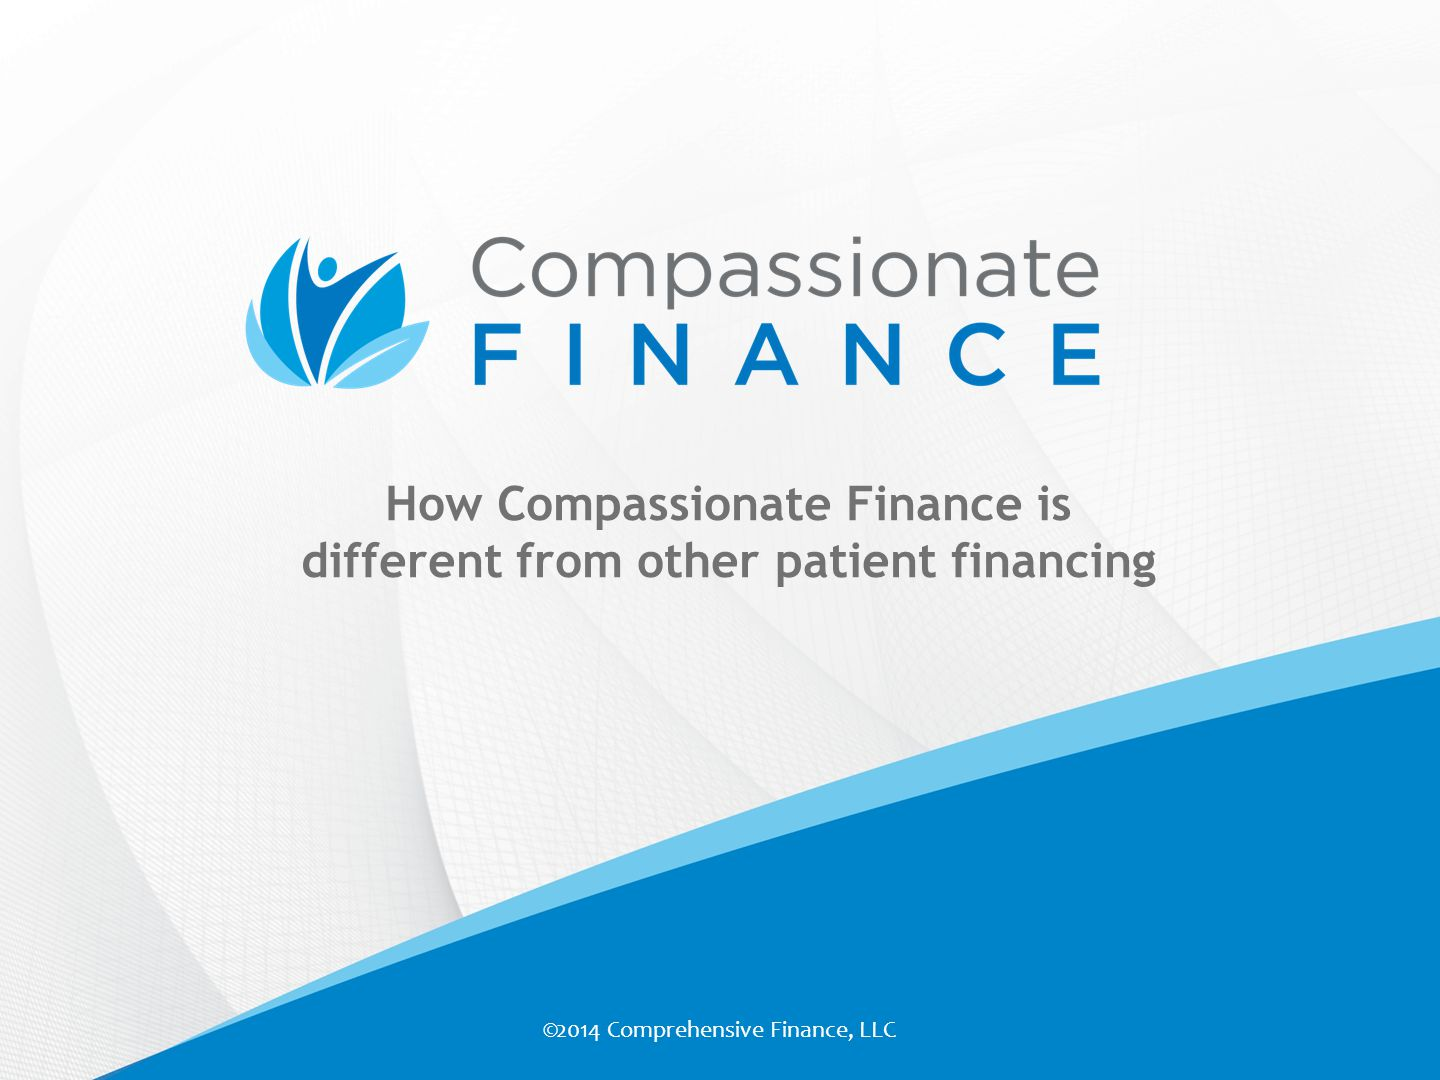 How Compassionate Finance is different from other patient financing